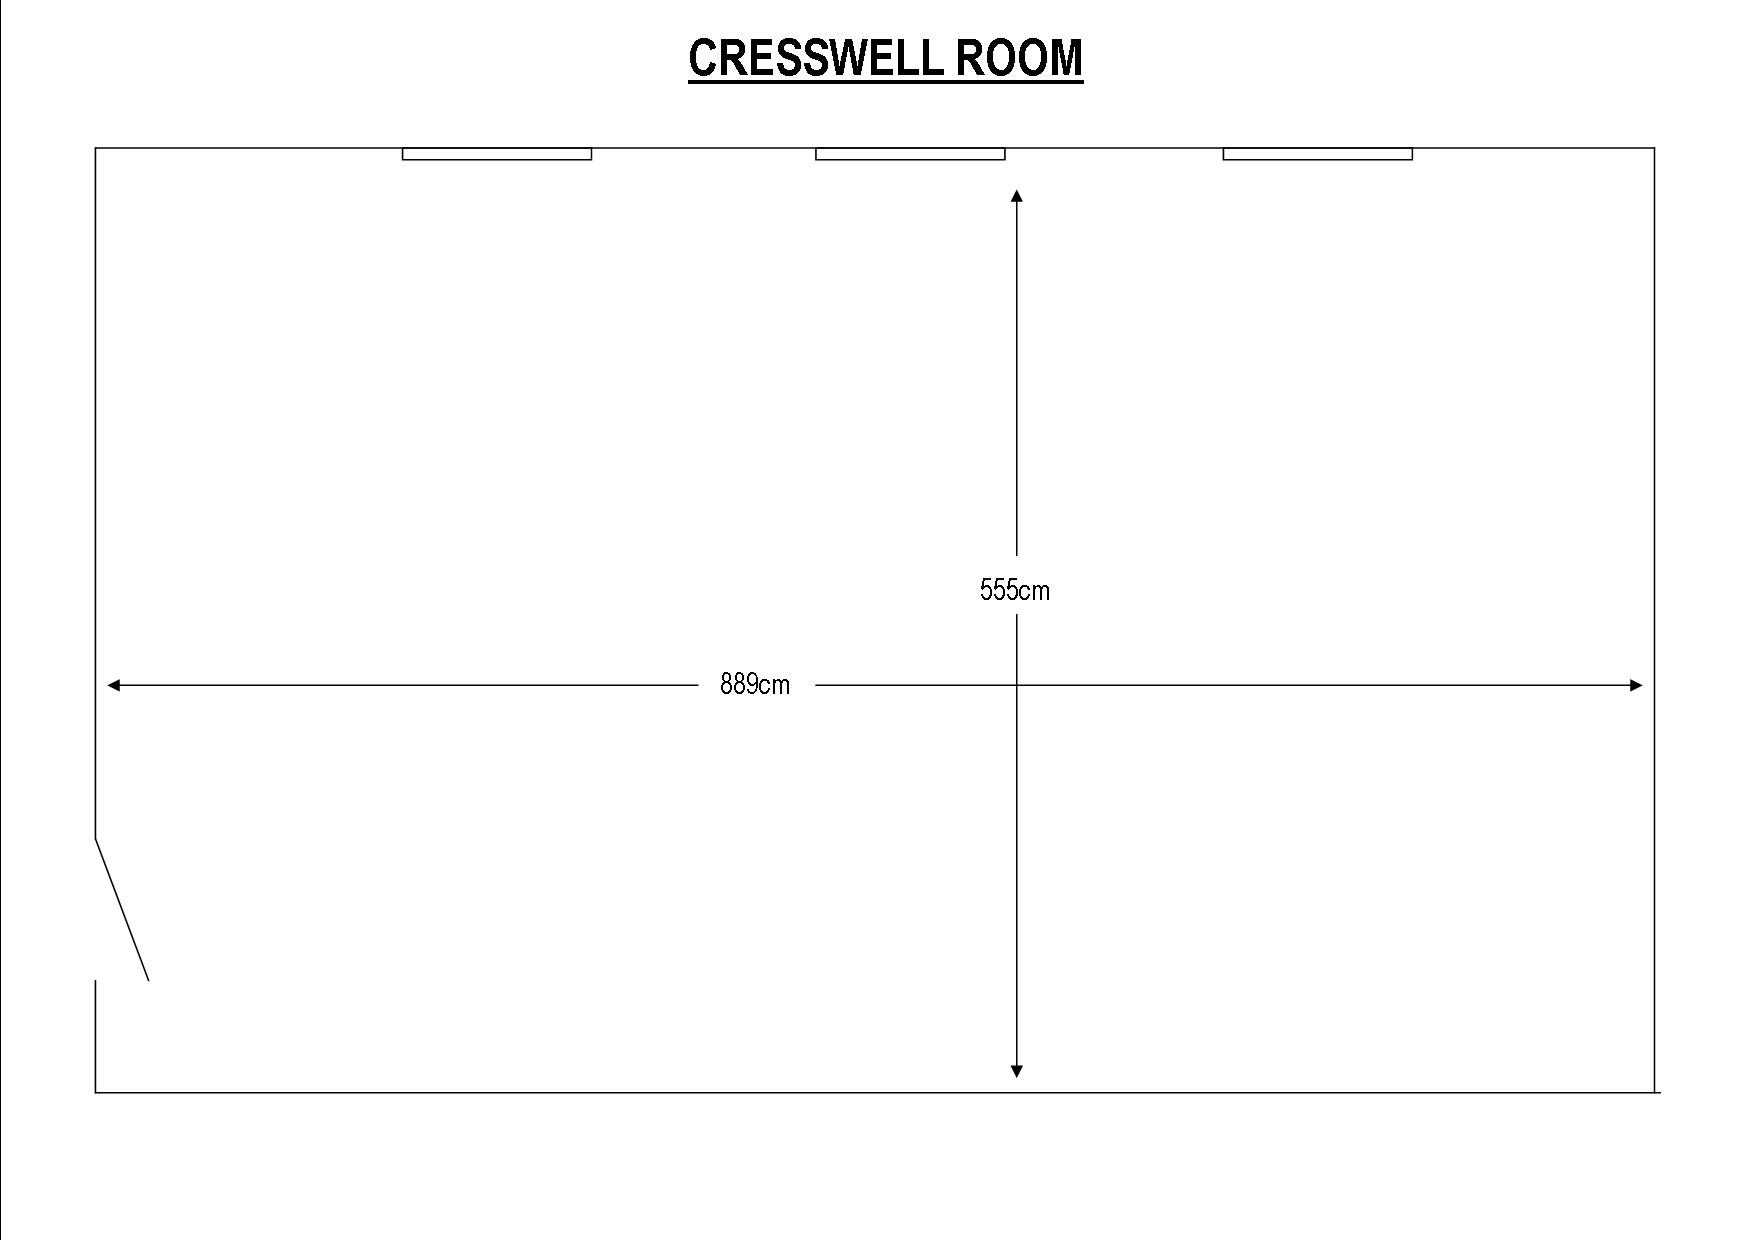 Cresswell Room at Colne Valley Golf Club